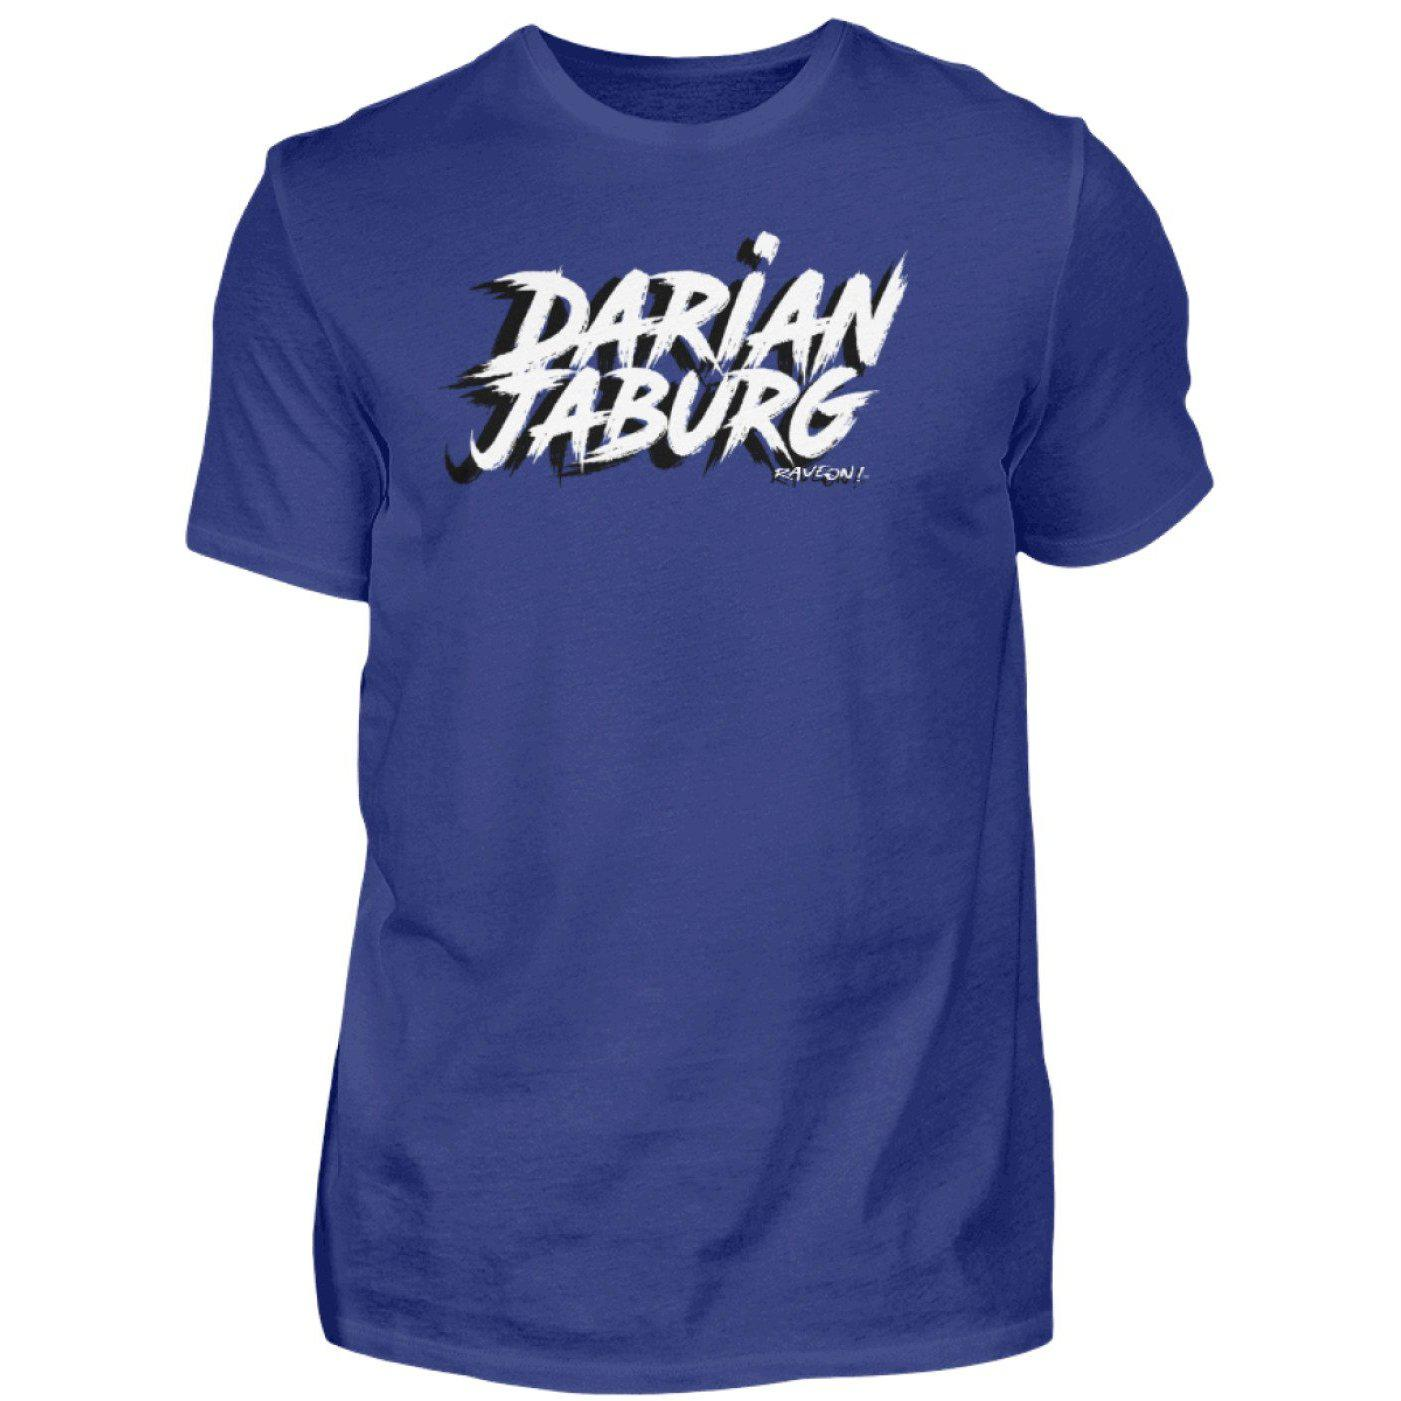 Darian Jaburg - BS Rec.Black - Rave On!® - Herren Premiumshirt Herren Premium Shirt - Rave On!® der Club & Techno Szene Shop für Coole Junge Mode Streetwear Style & Fashion Outfits + Sexy Festival 420 Stuff